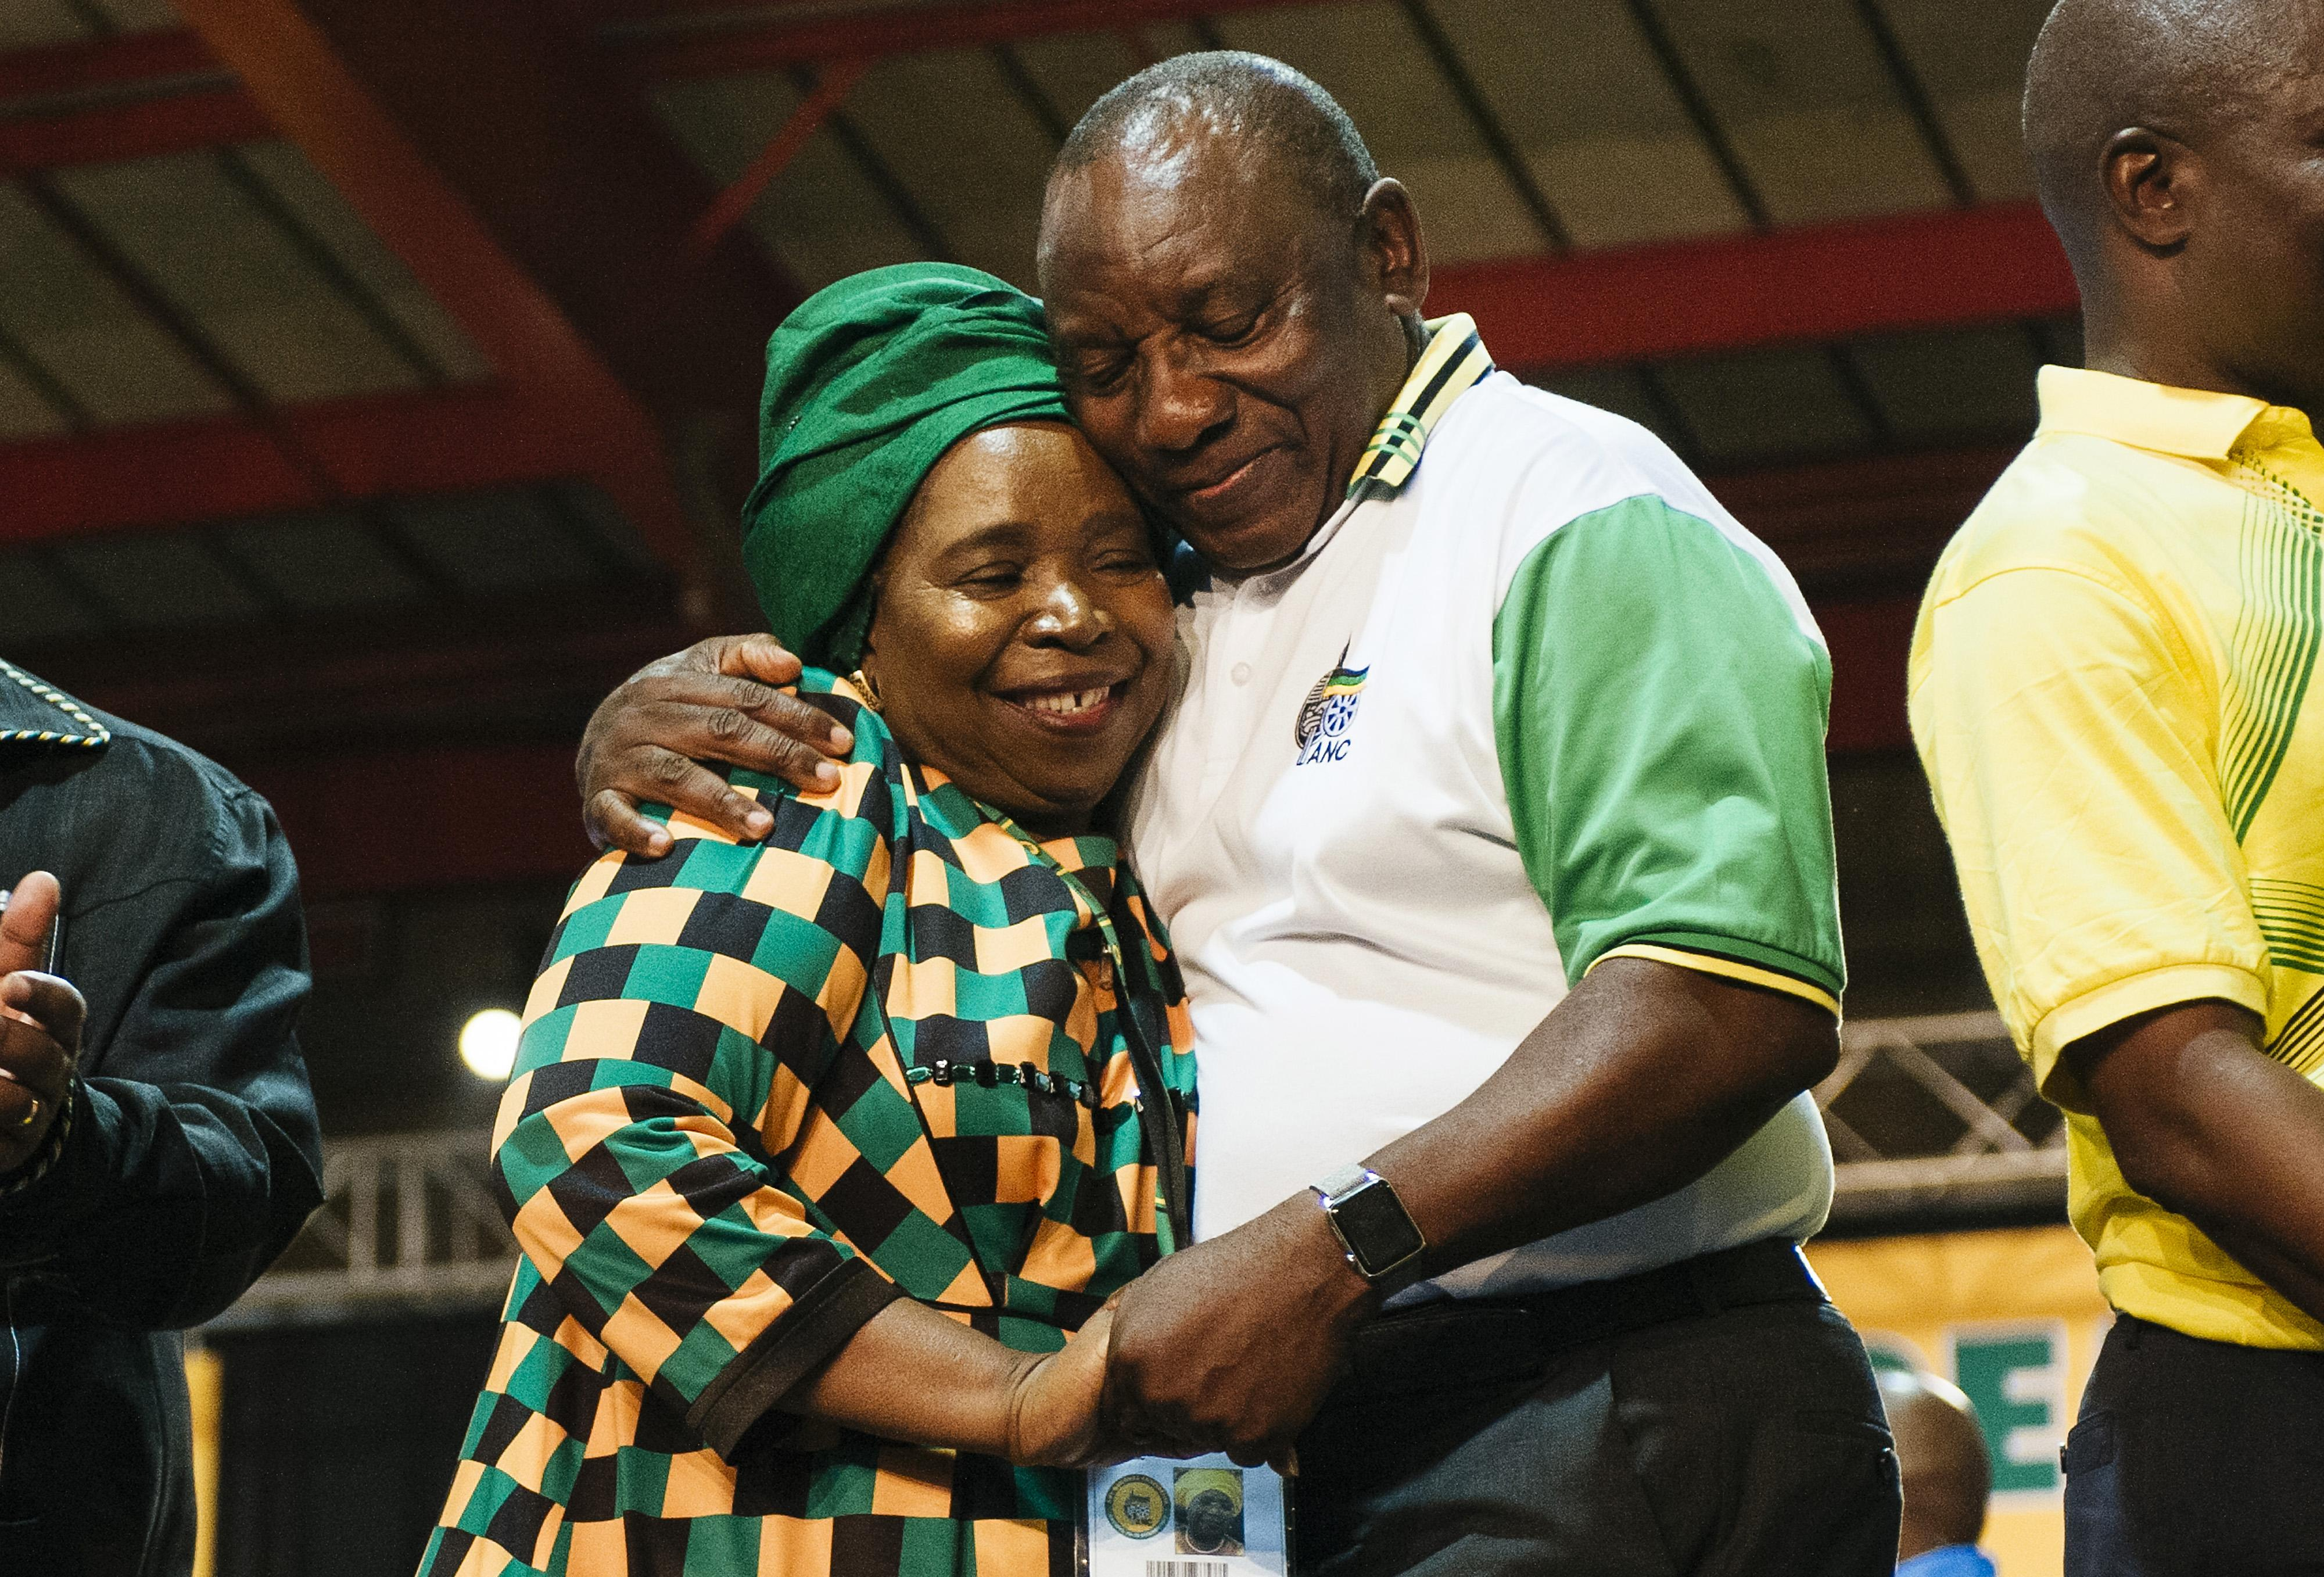 Cyril Ramaphosa Chosen to Lead South Africa's Ruling Party